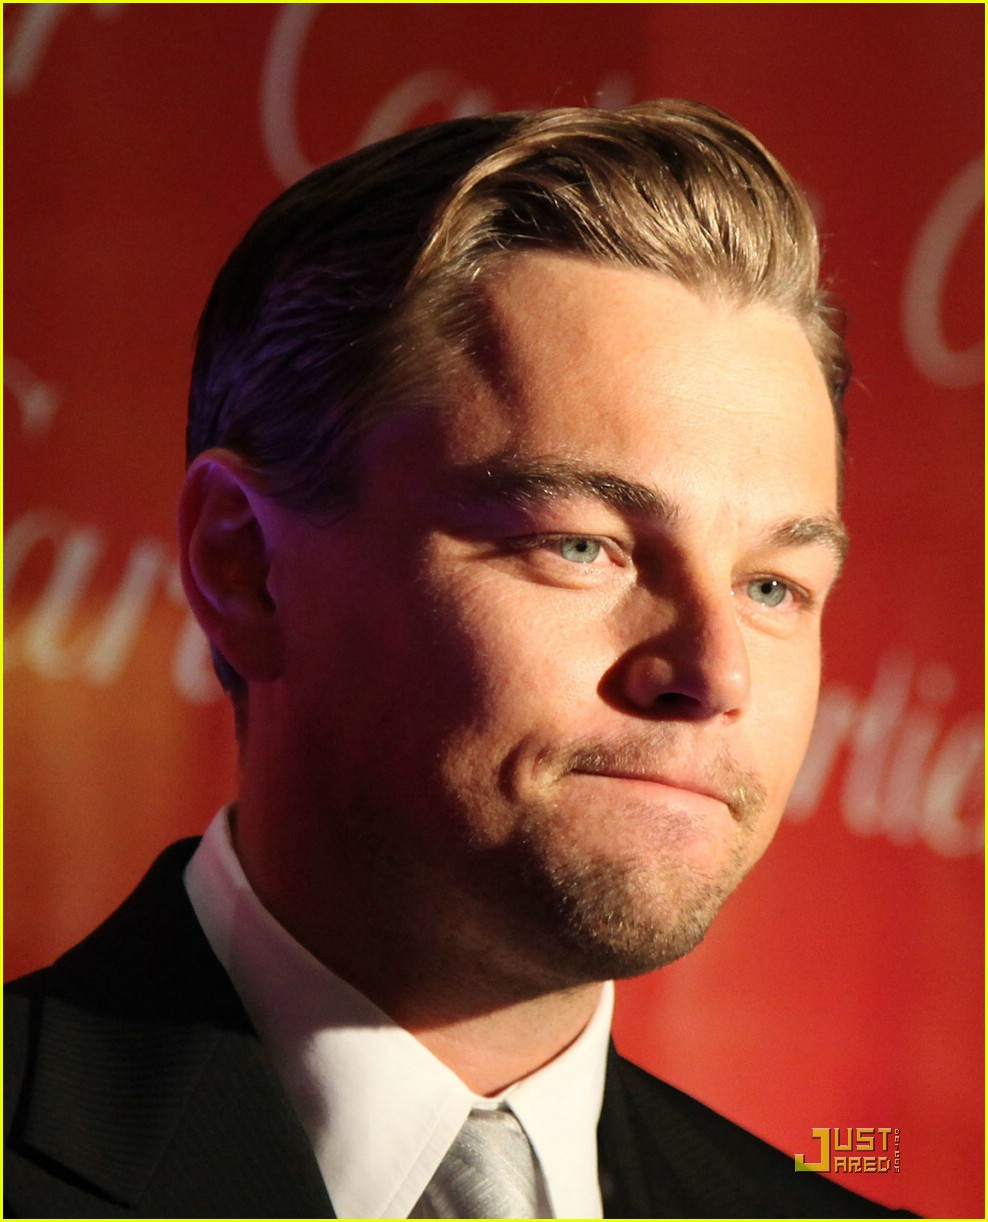 Leonardo DiCaprio Is A Palm Spring Film Winner: Photo